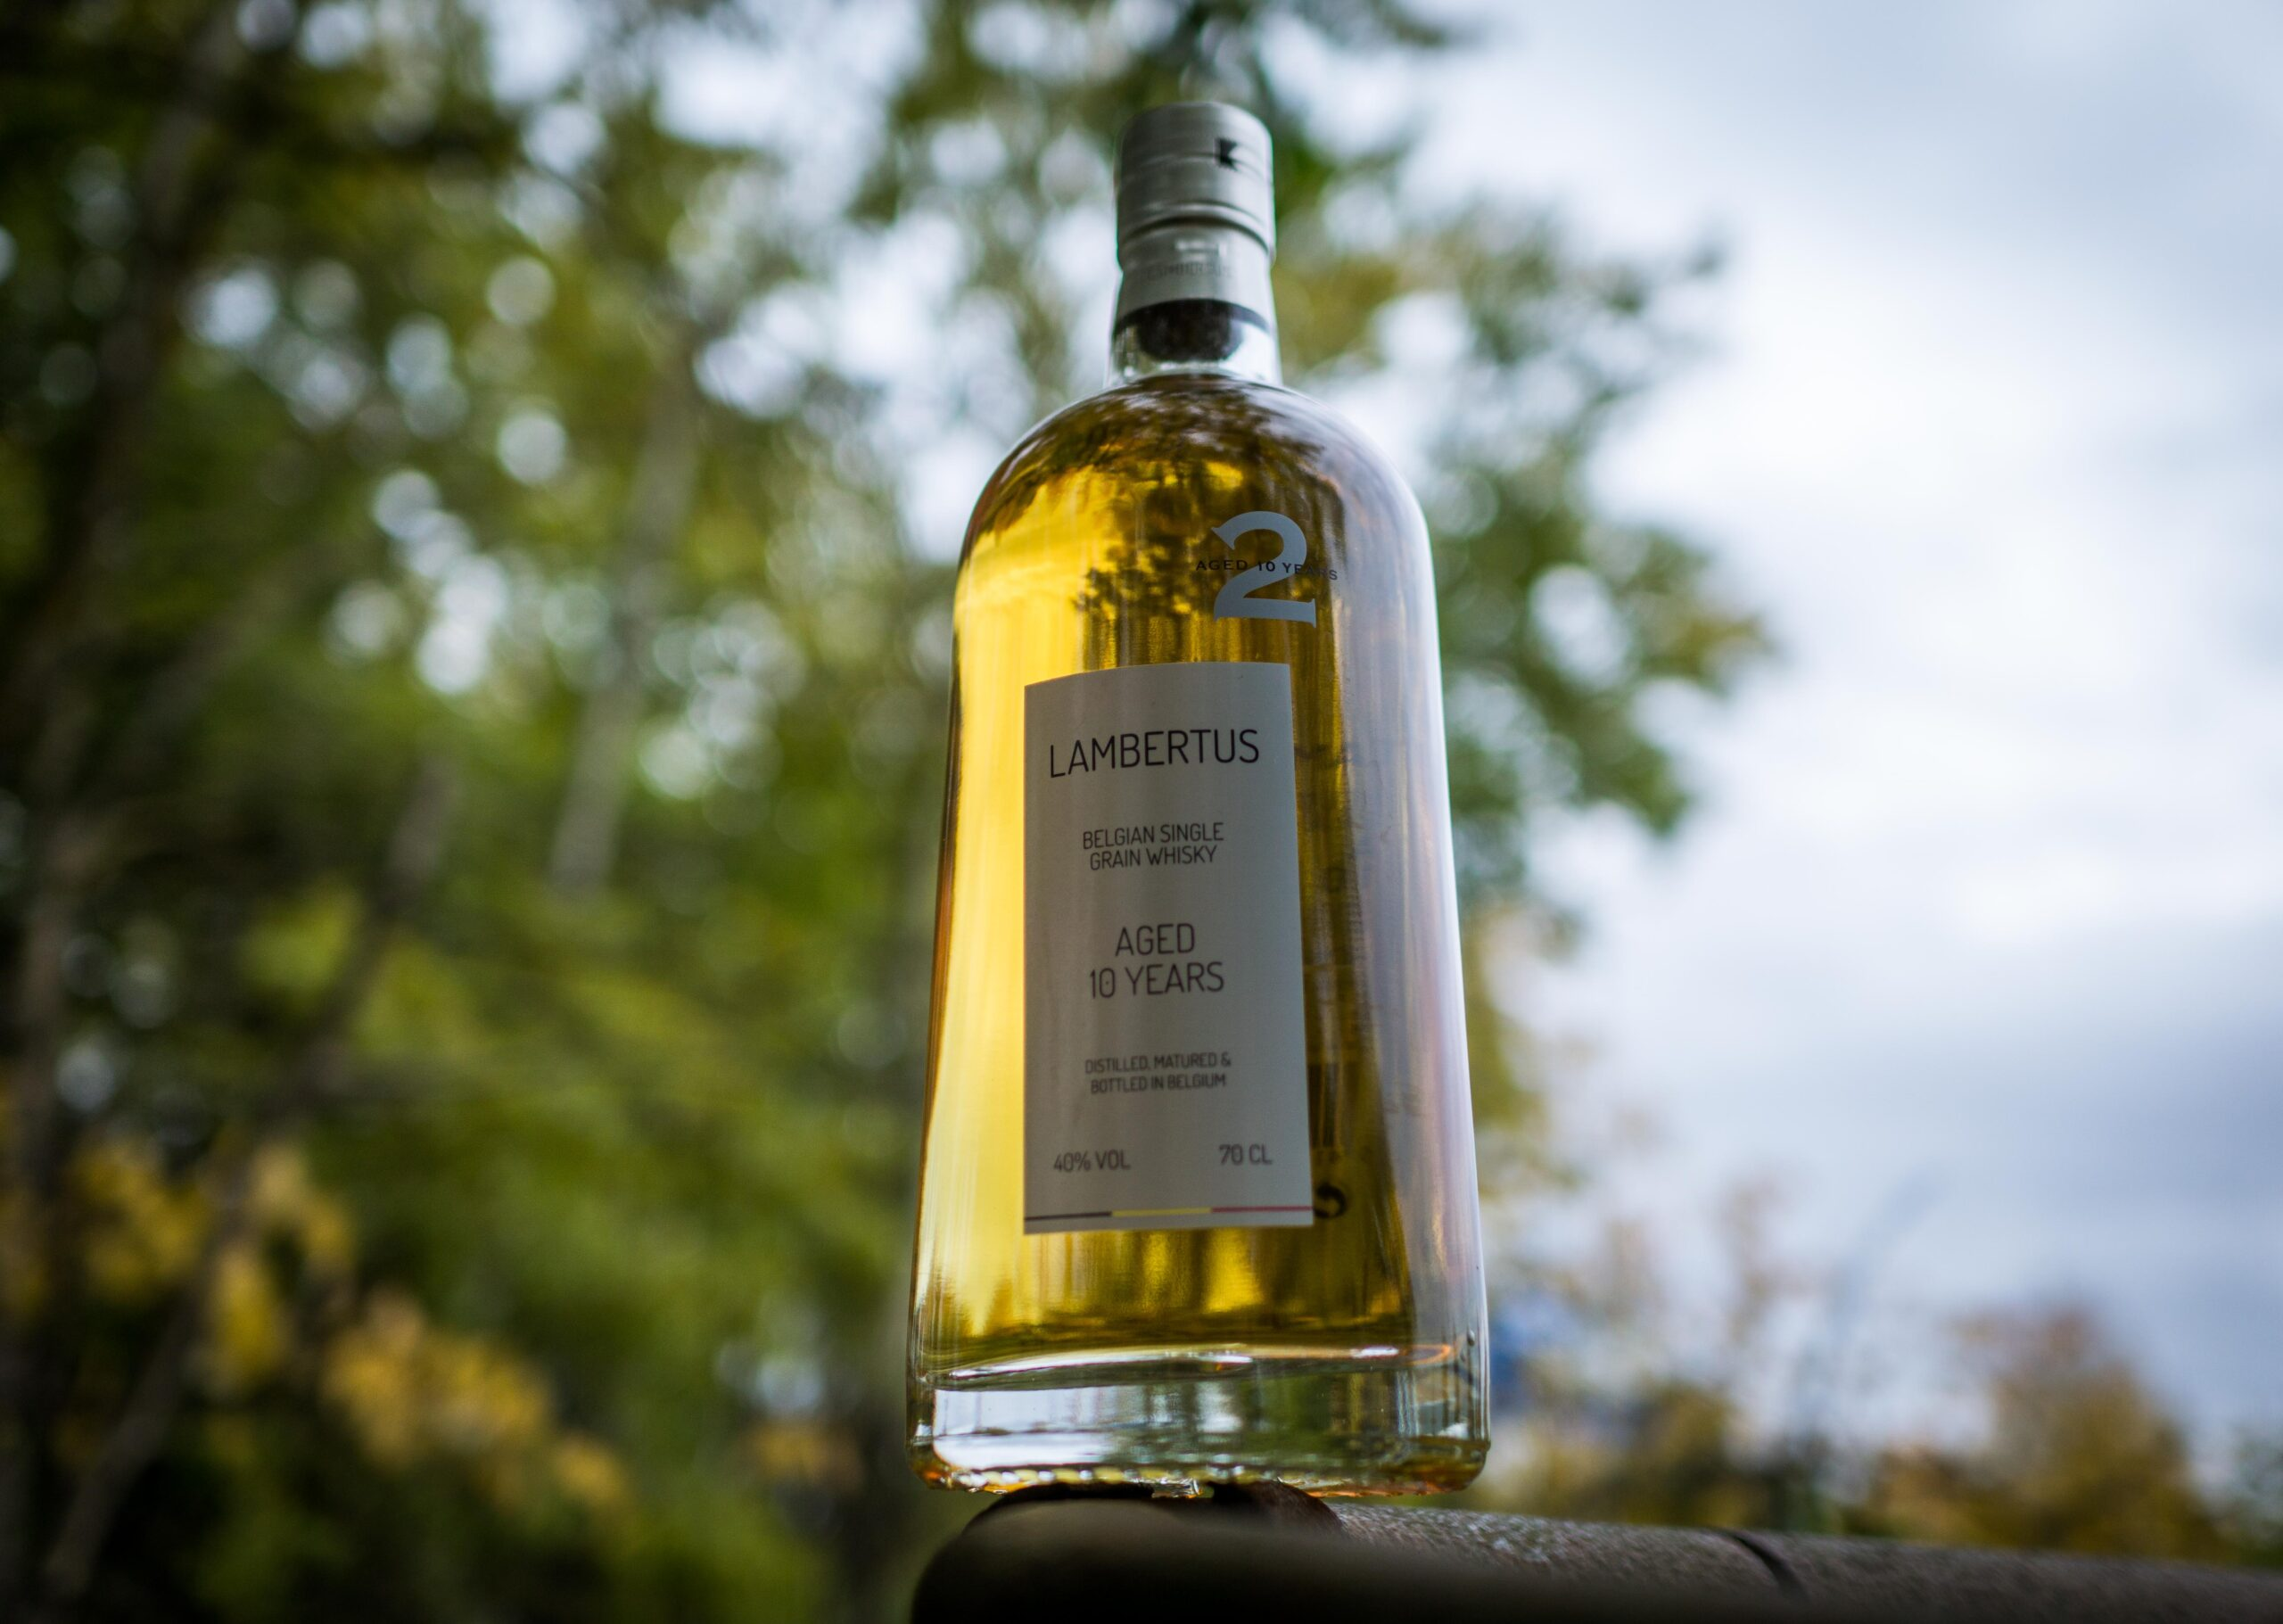 Lambertus Belgian single grain whisky 10yo